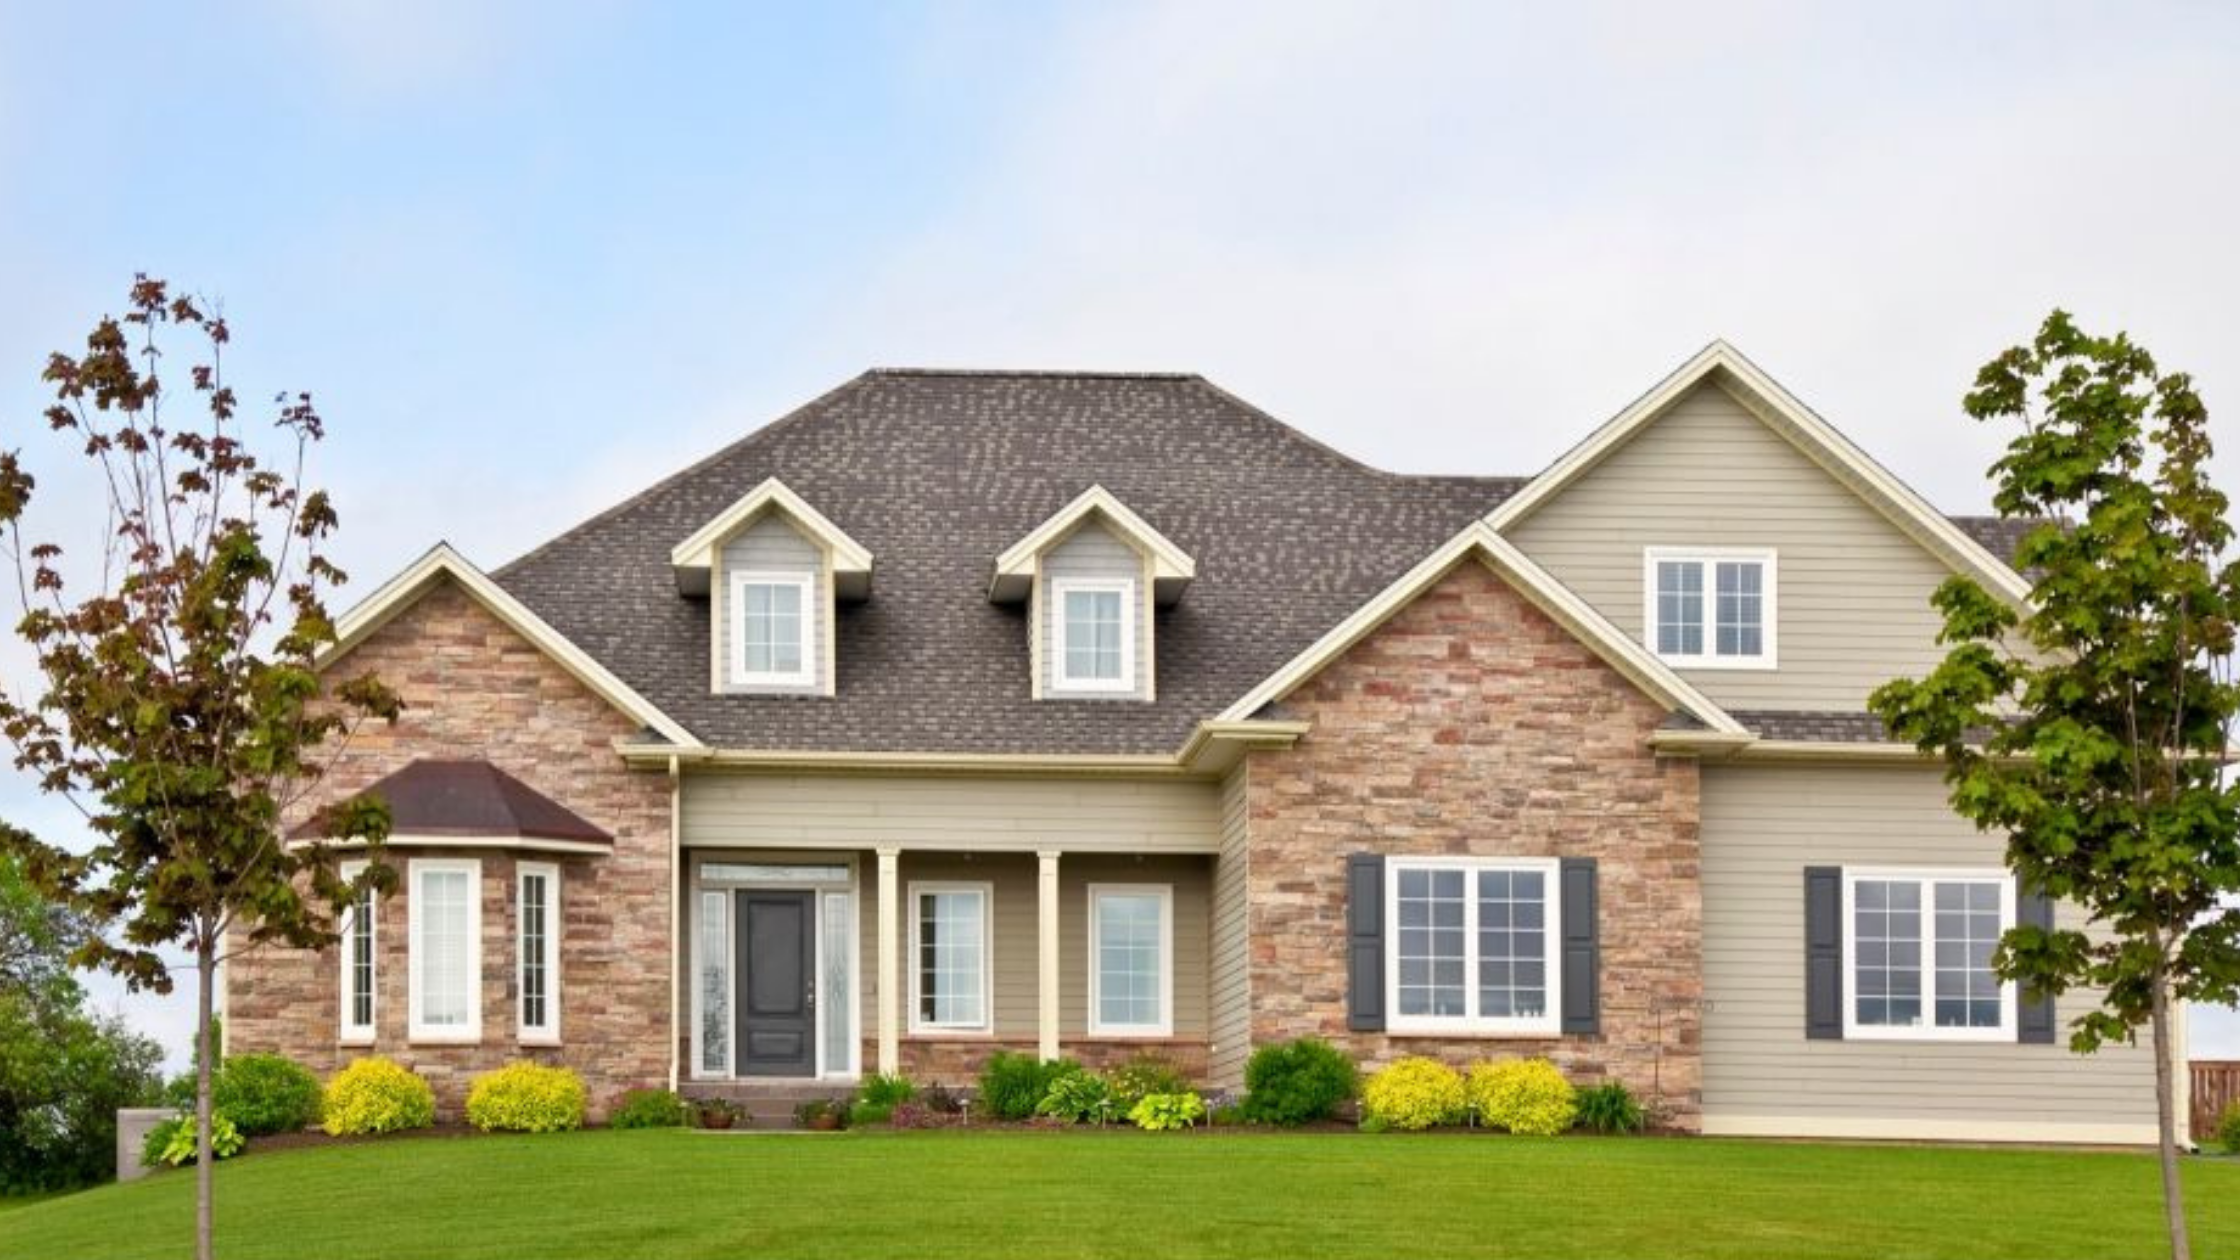 Tips for Buying a Home Unseen